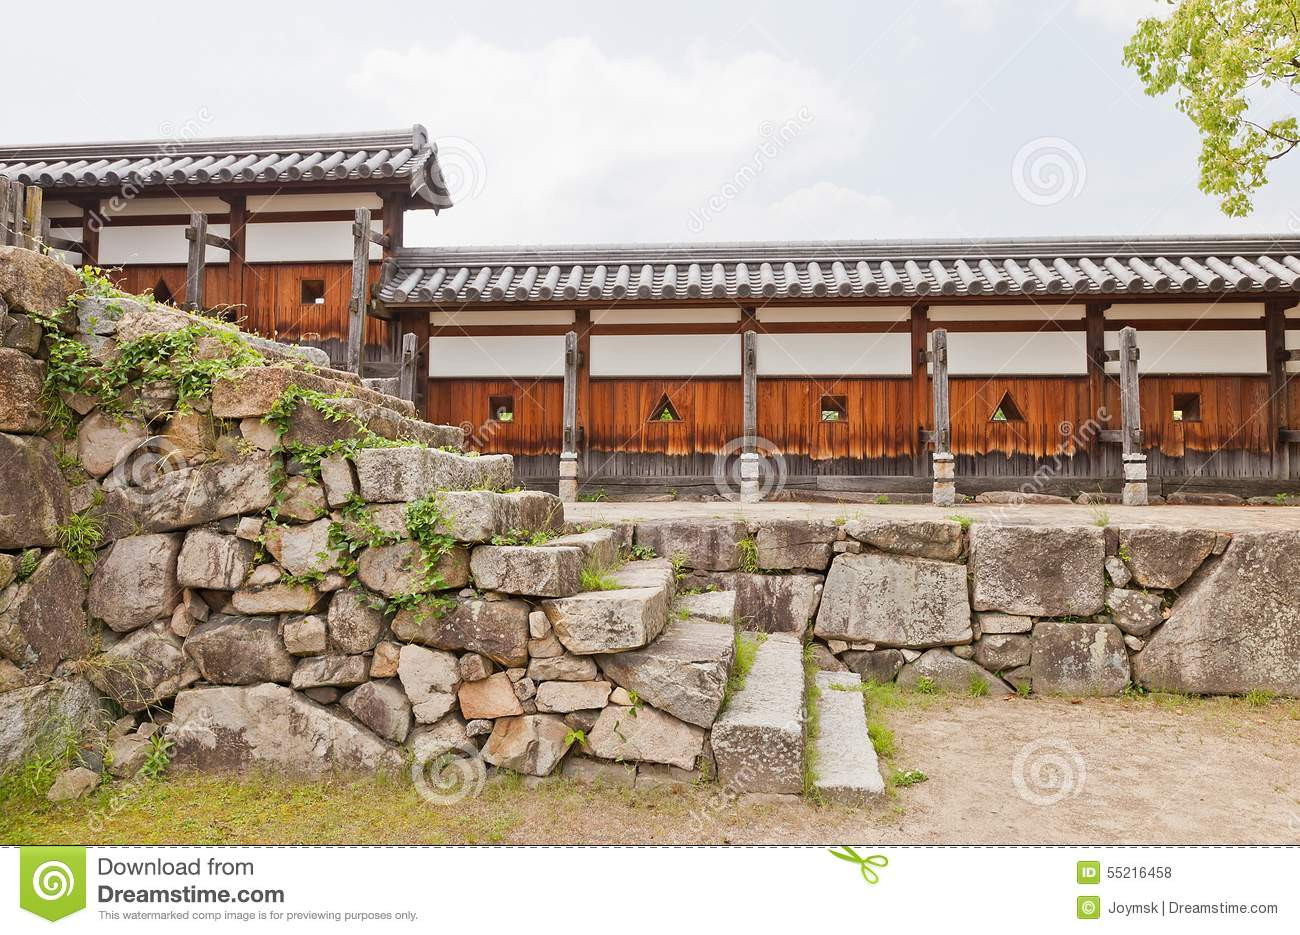 Download Wall Of Hiroshima Castle, Japan. National Historic Site Stock Photo - Image of military, main: 55216458